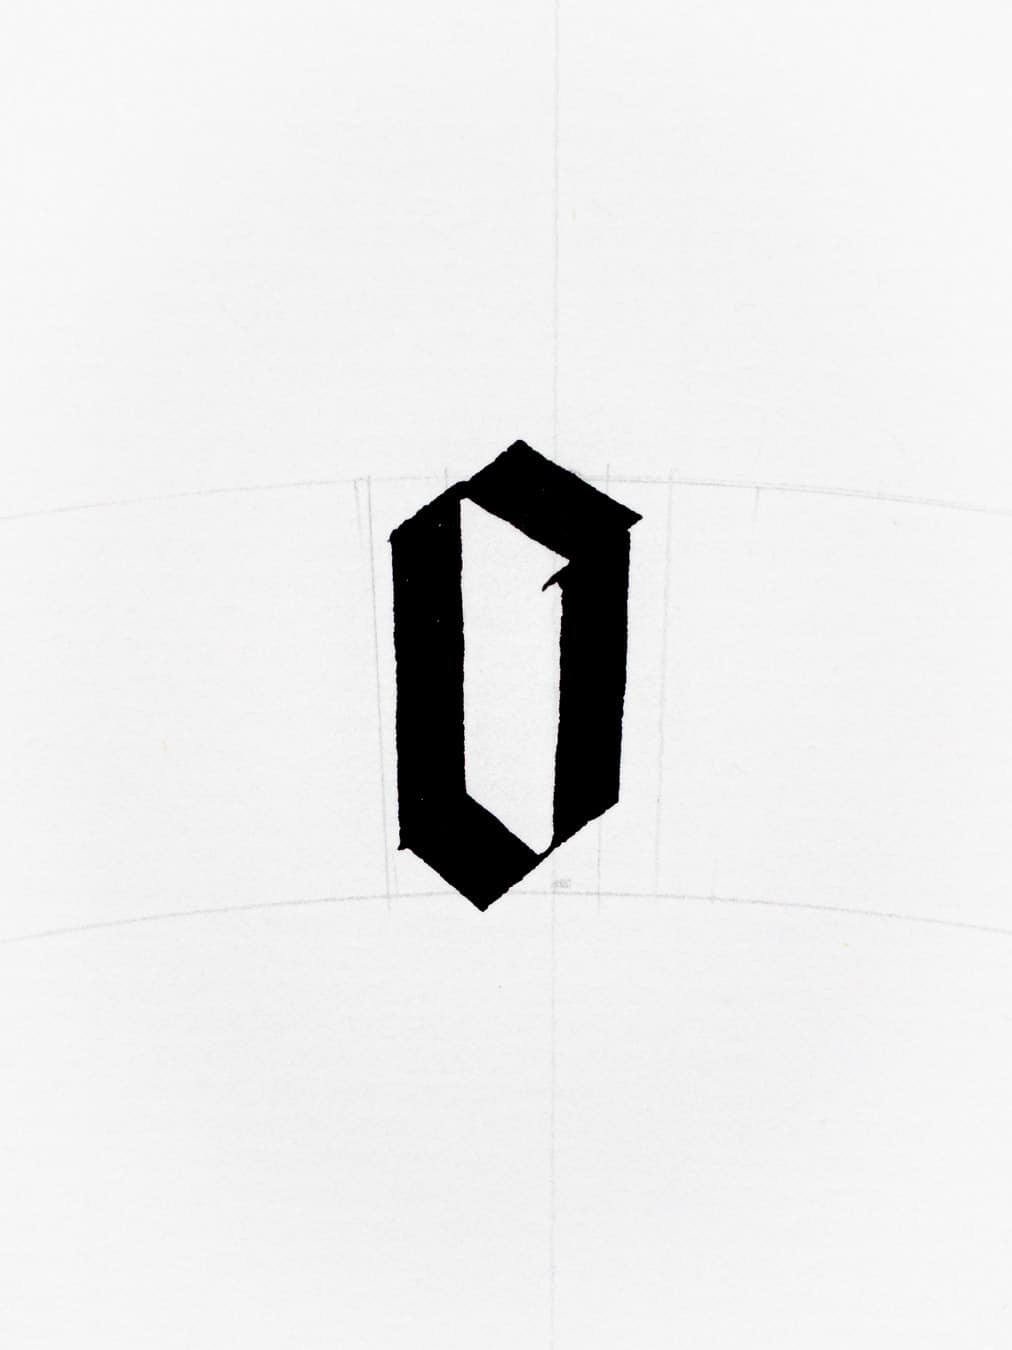 letter o in gothic script